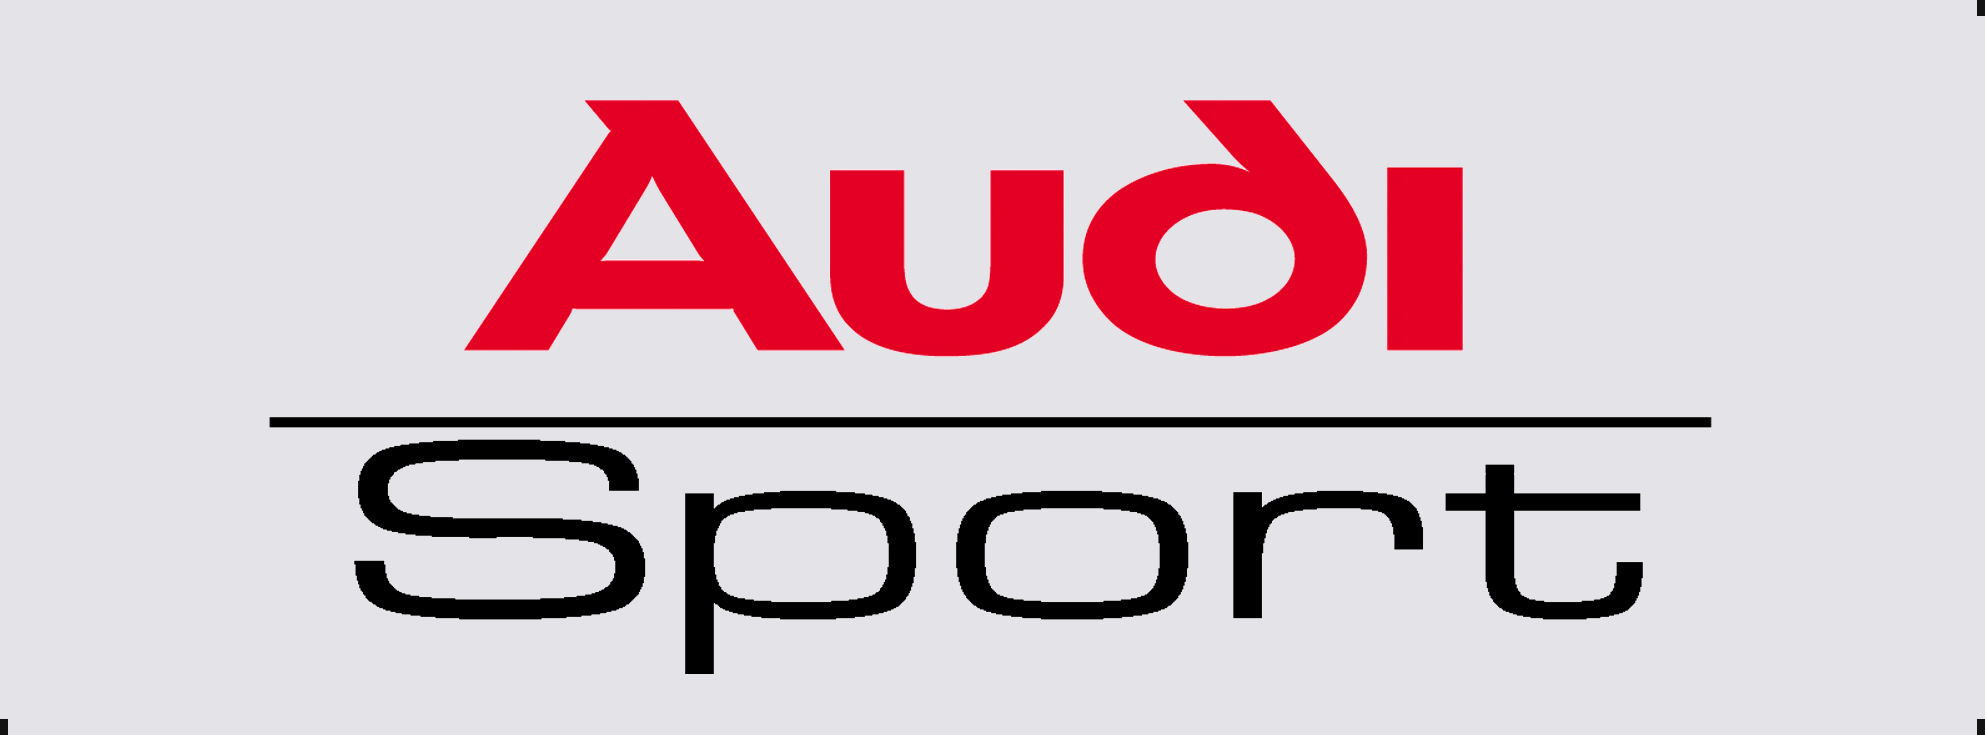 logos audi company logo - photo #25